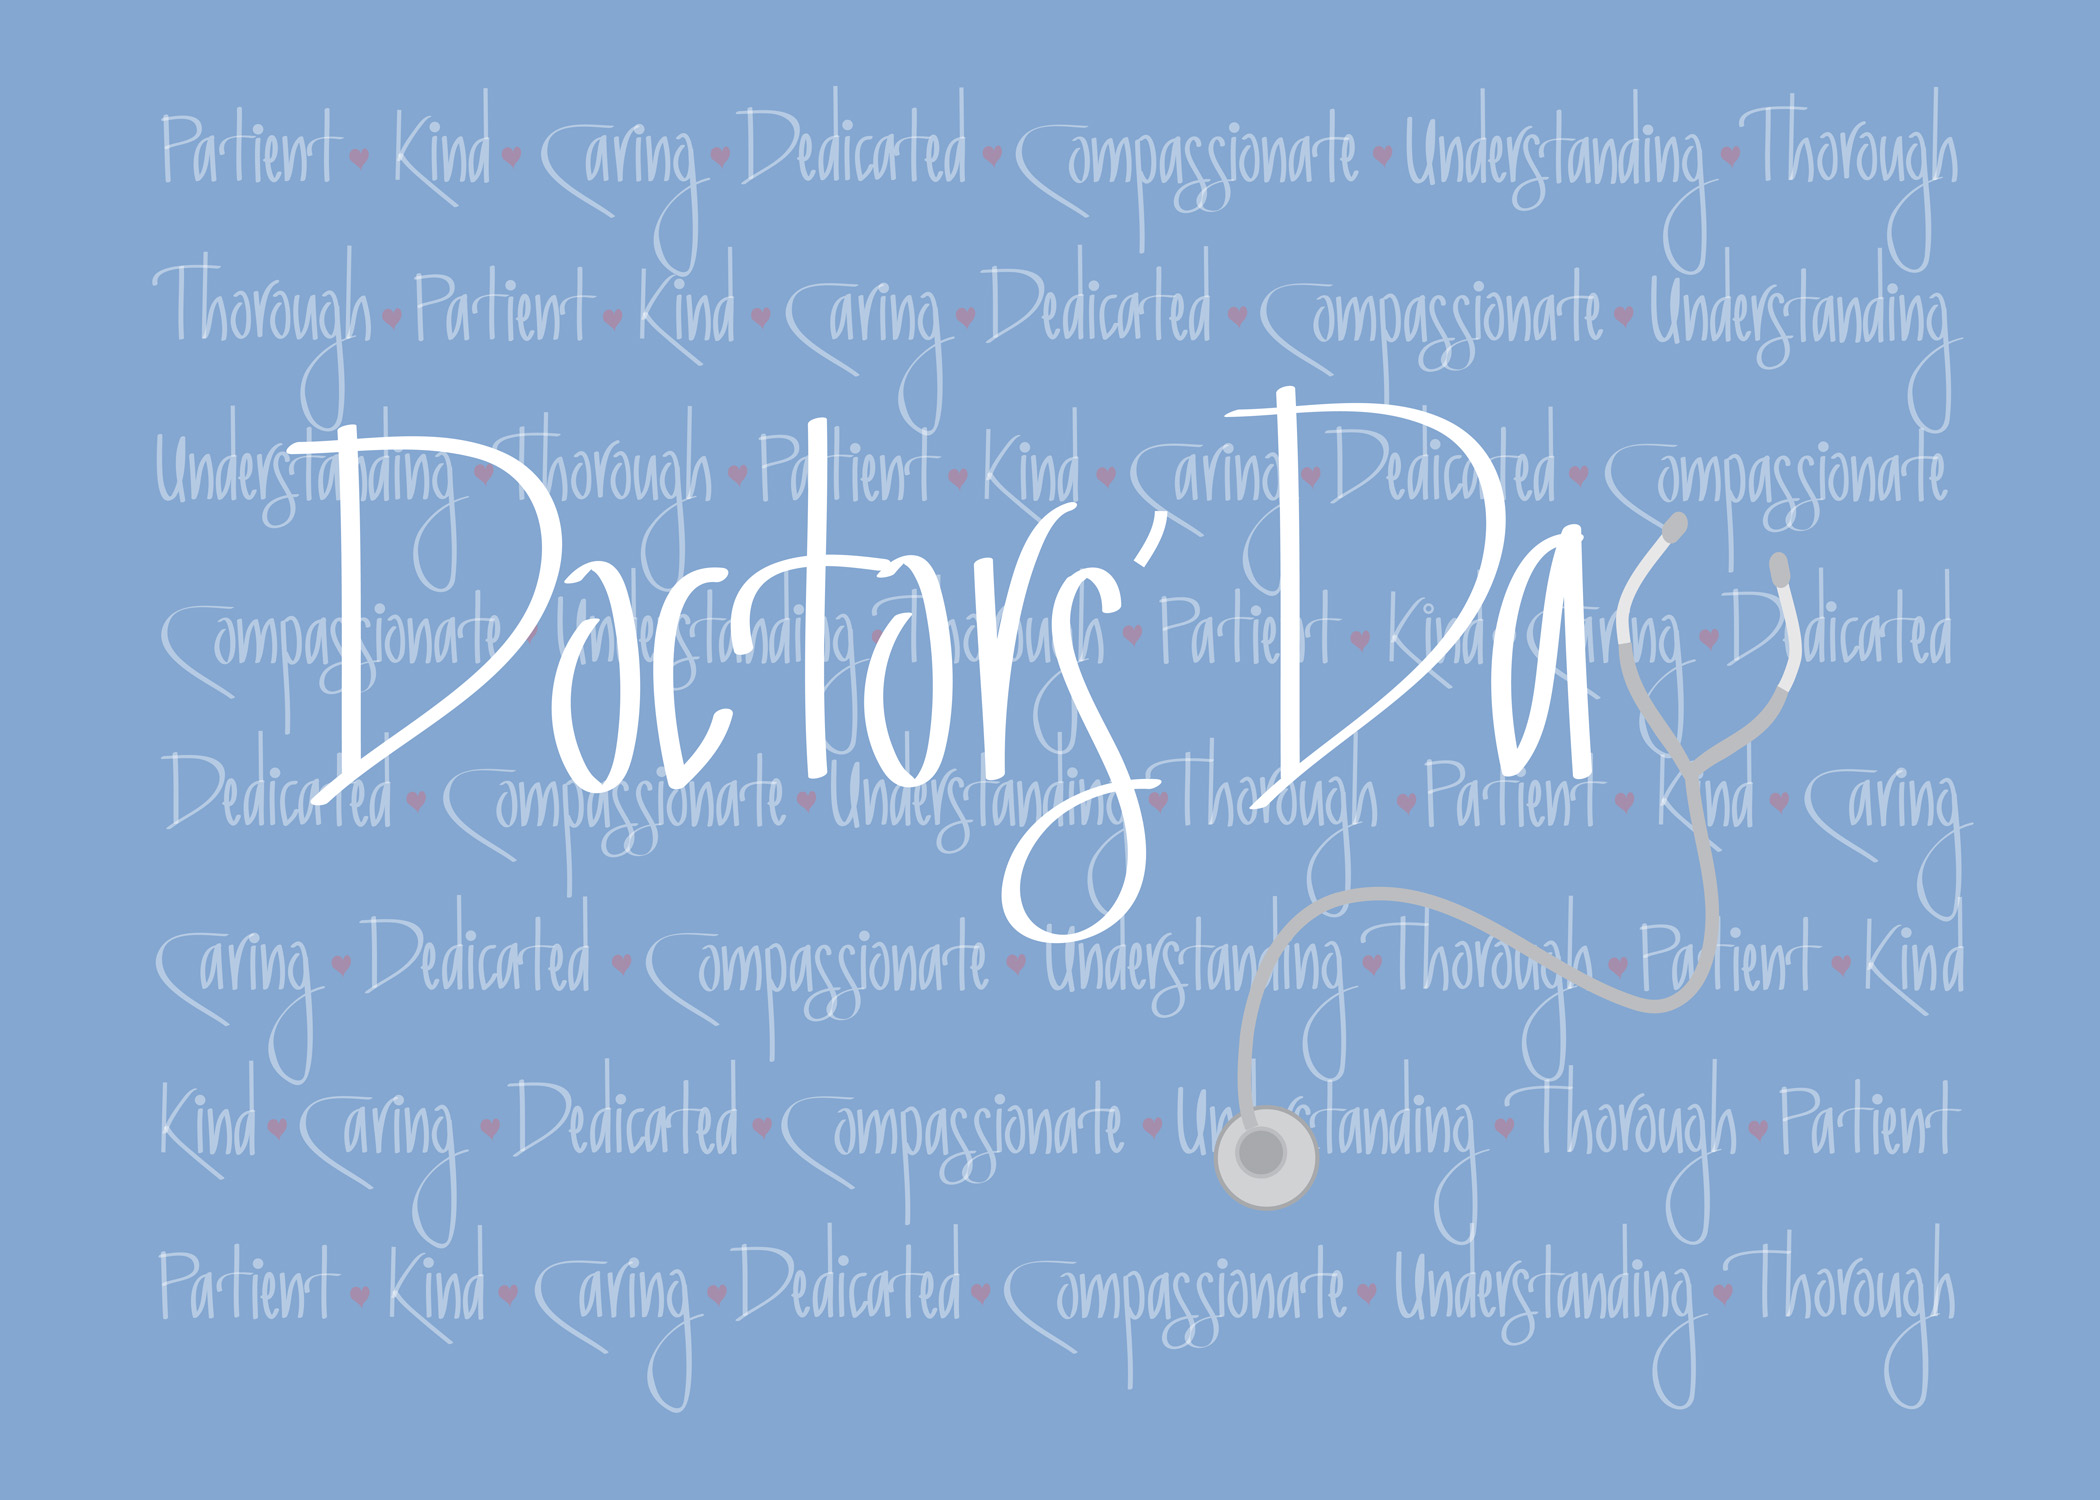 Birthday Quotes For Doctors: Happy Doctors Day 2014 Quotes. QuotesGram